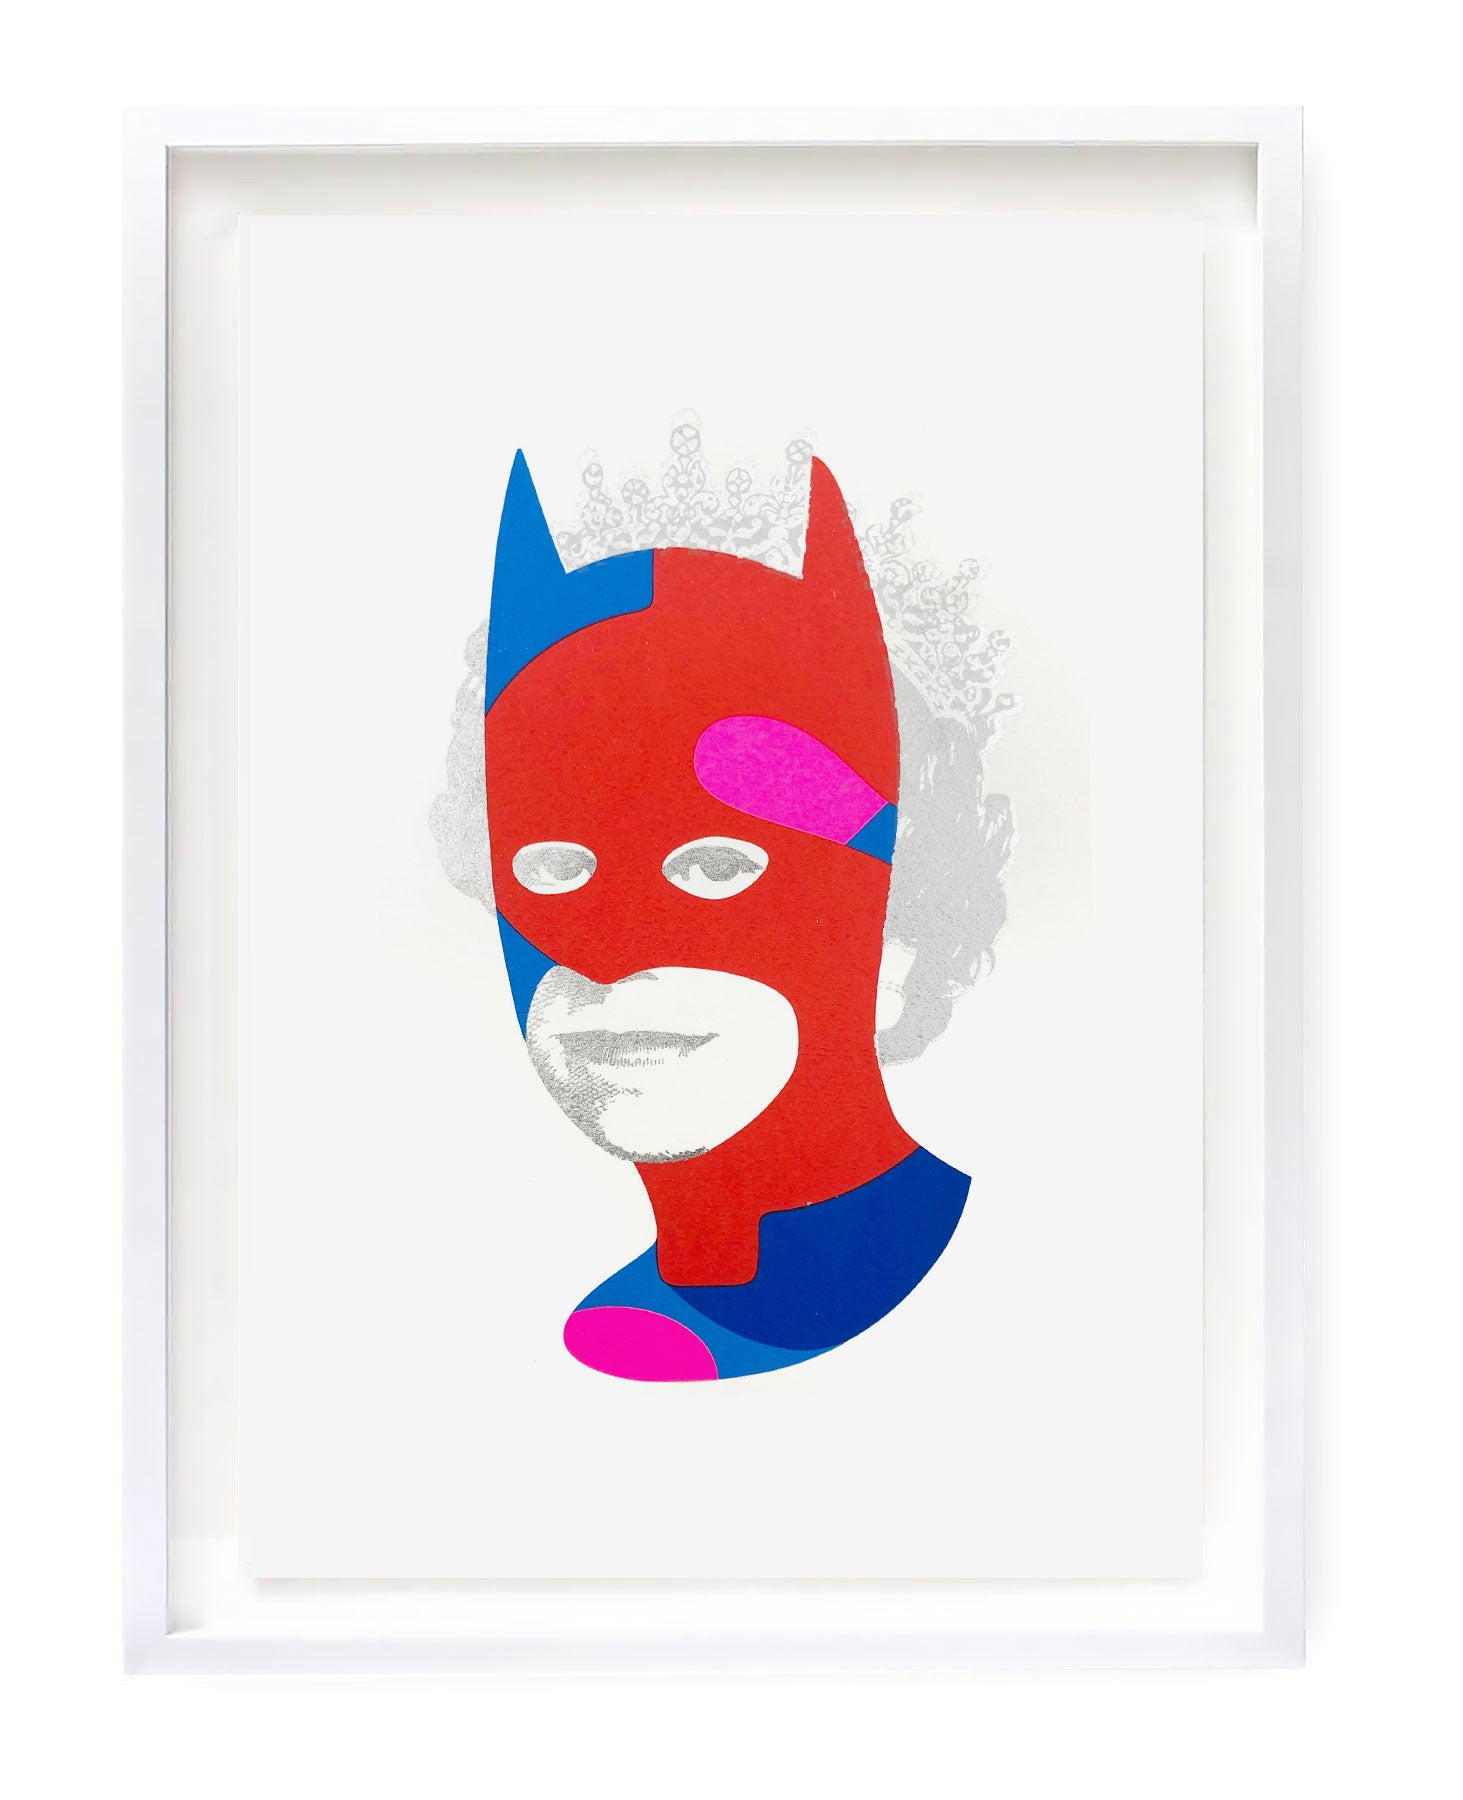 Rich Enough to be Batman - Red and Silver Dollar Sign A3 edition